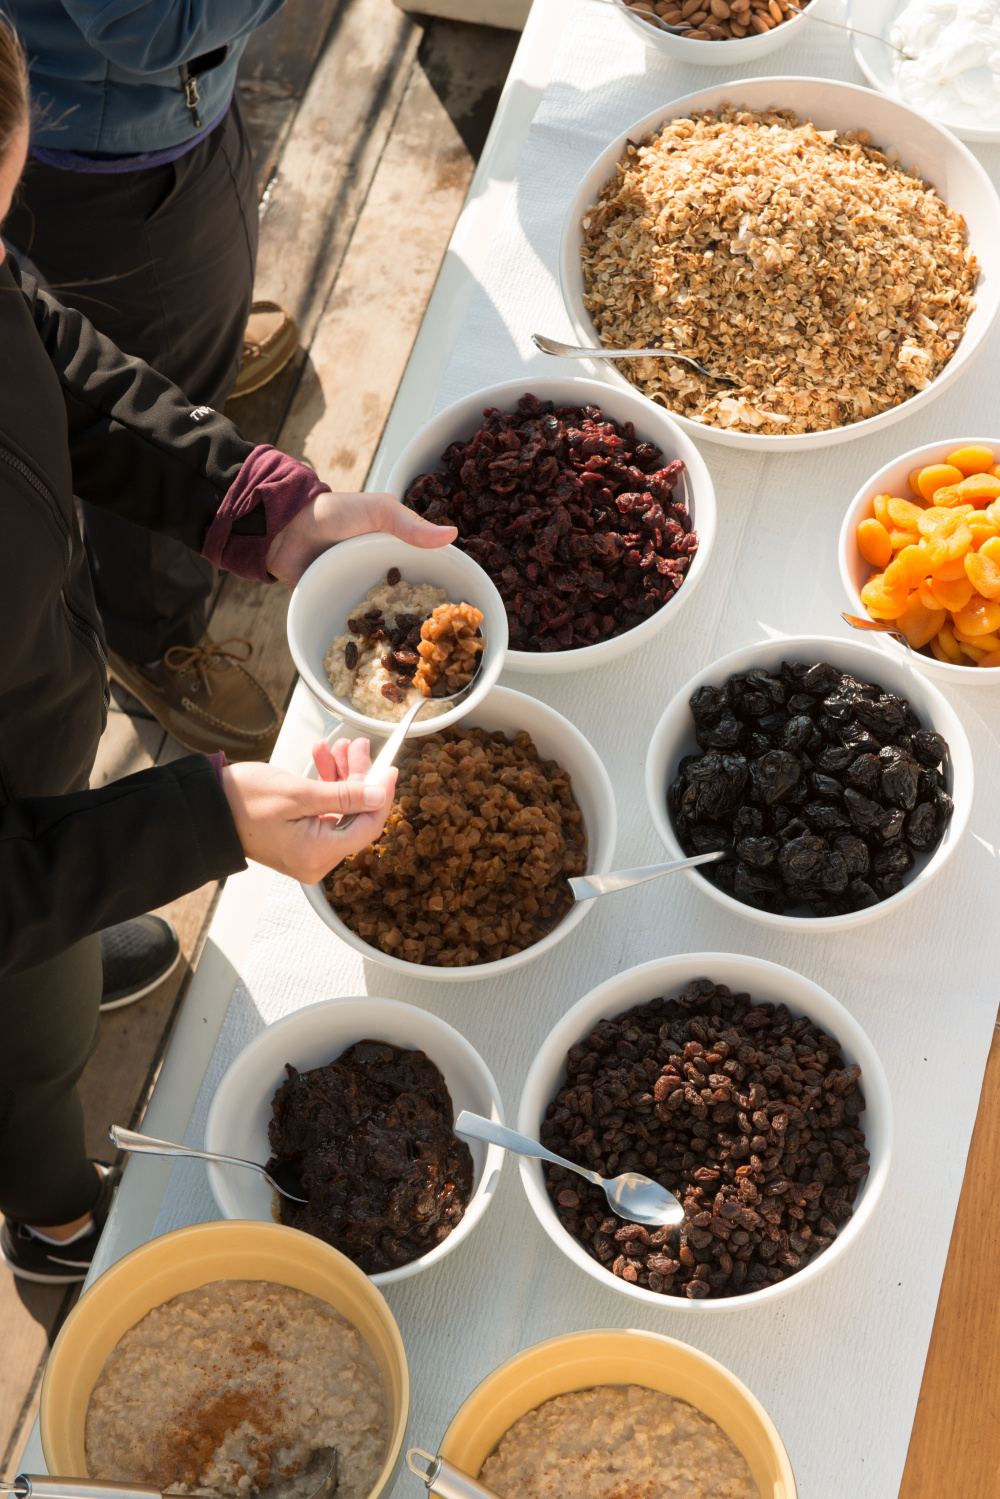 Oatmeal, hand made granola, yogurt, dried fruit, almonds, cottage cheese Photo by Douglas Merriam